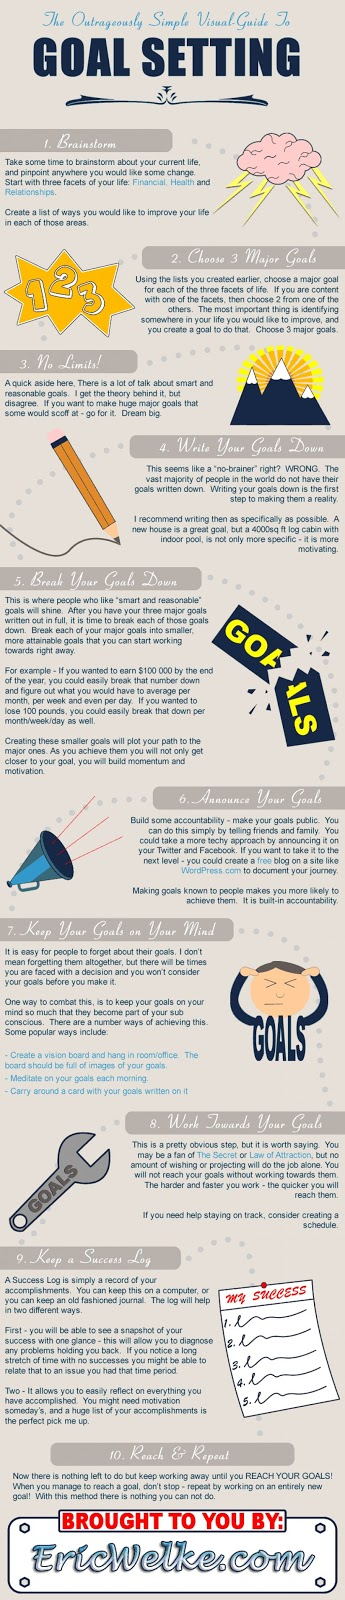 step by step goal setting guide